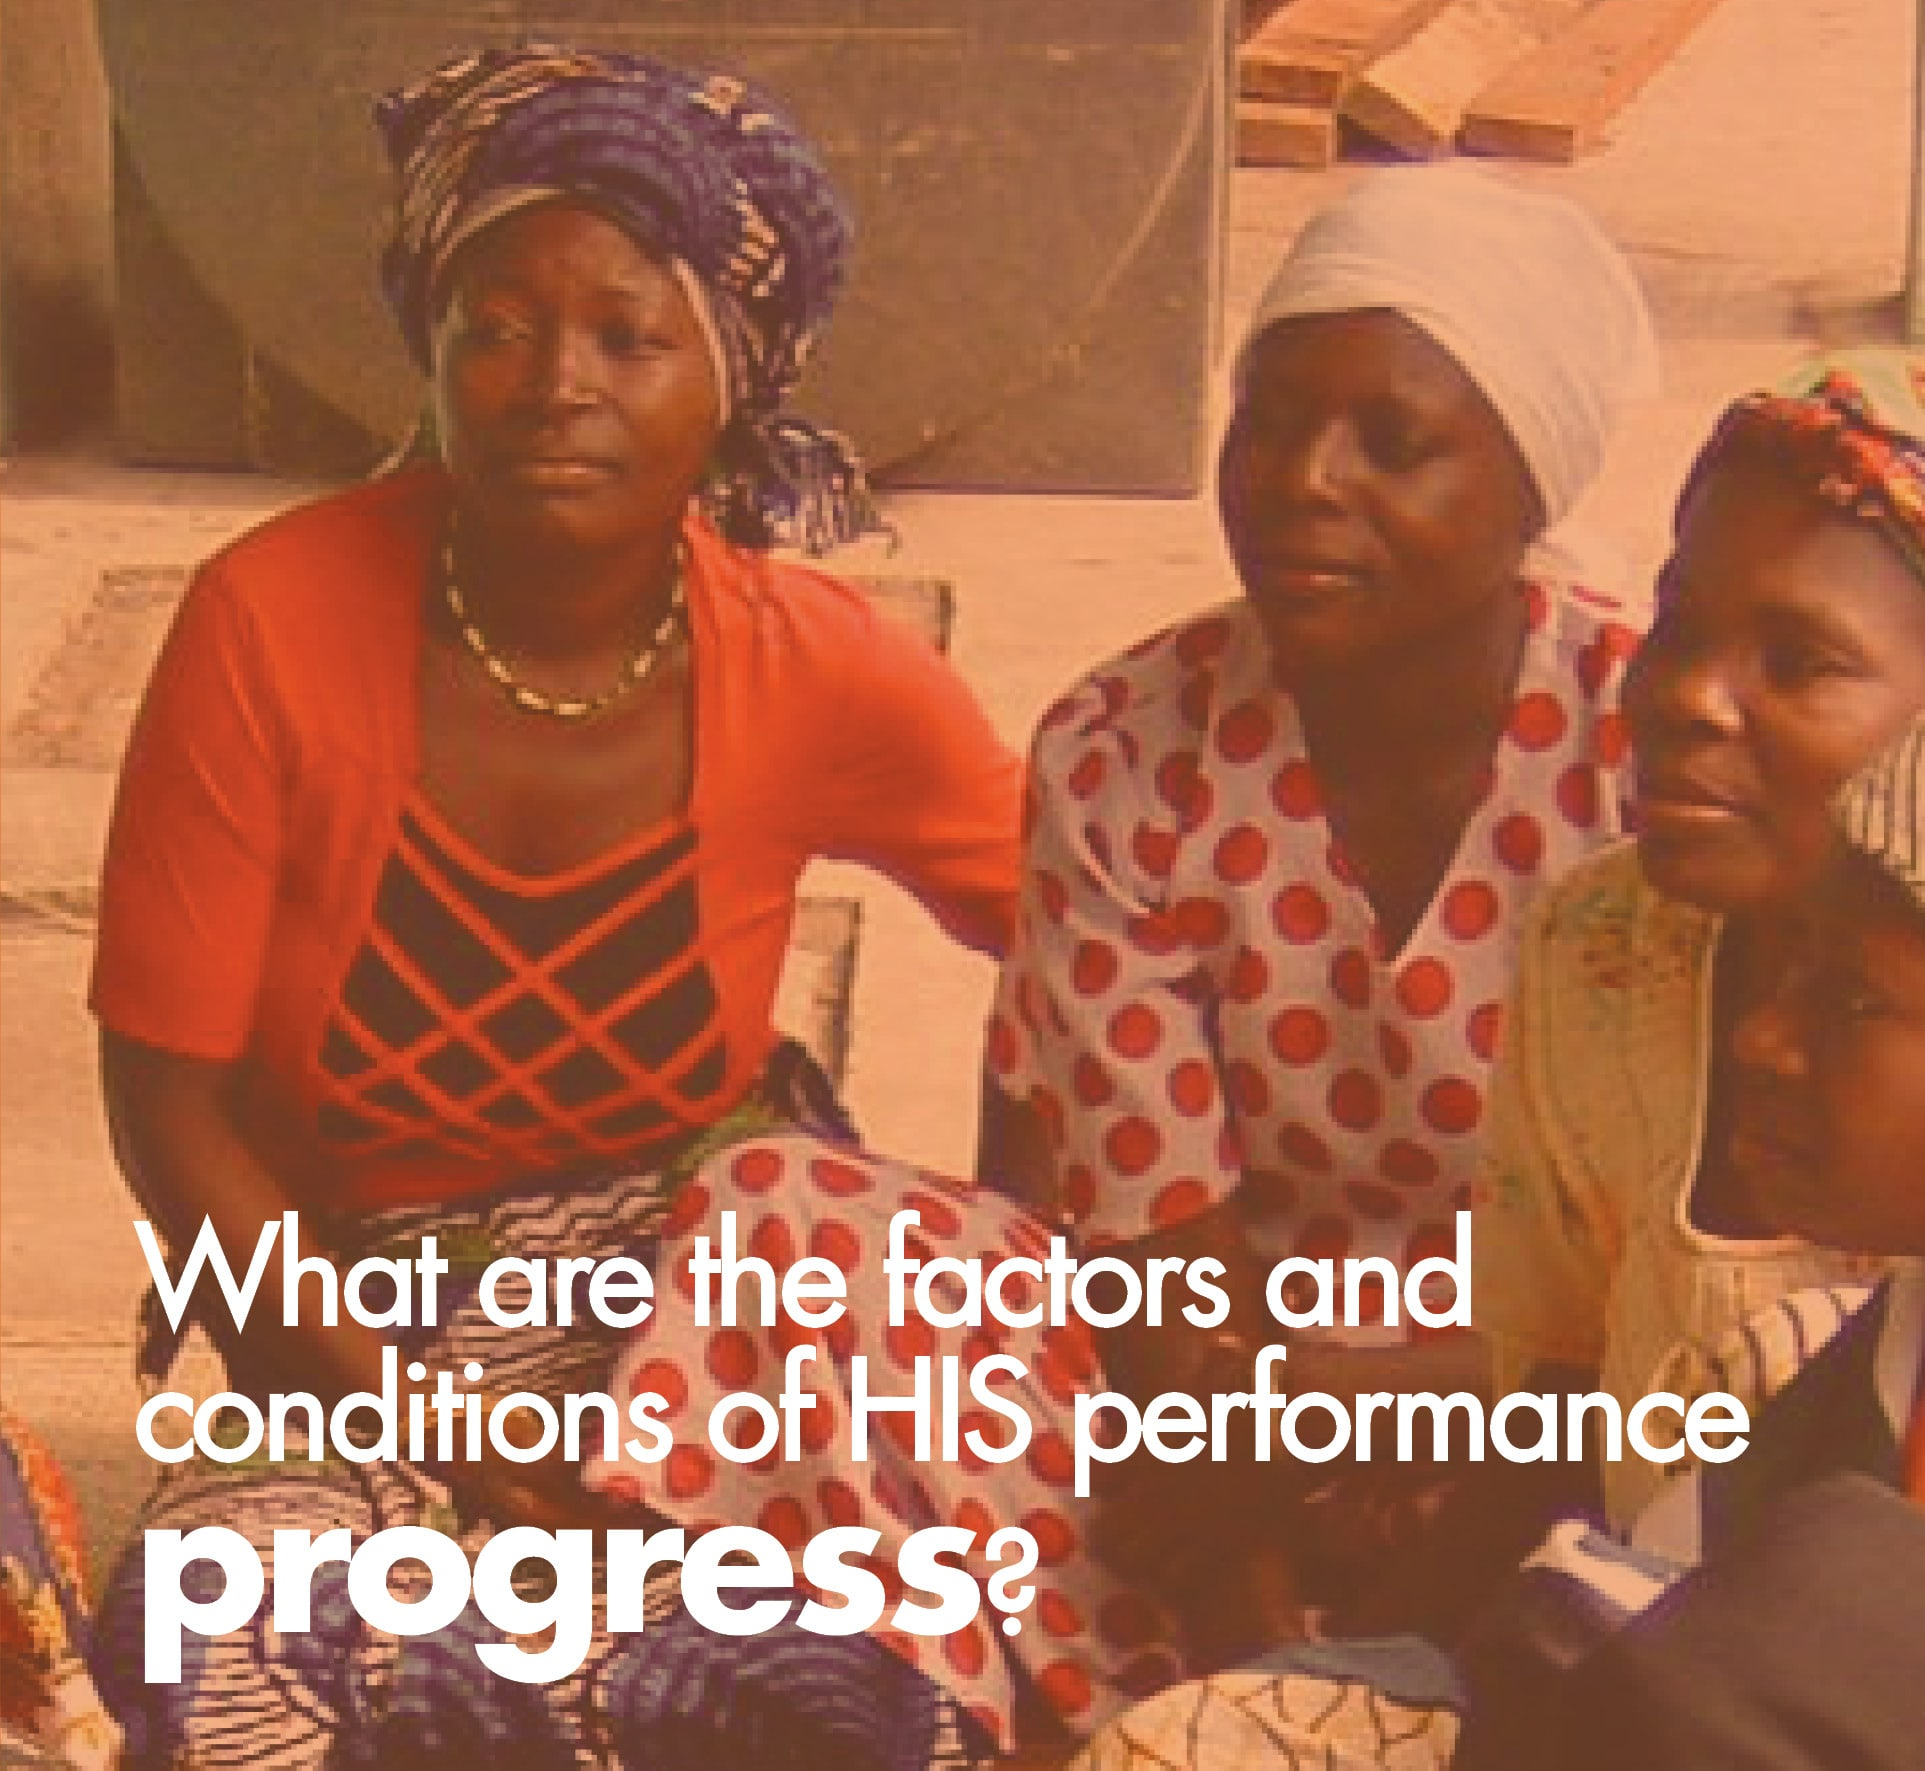 What are the factors and conditions of HIS performance and progress?